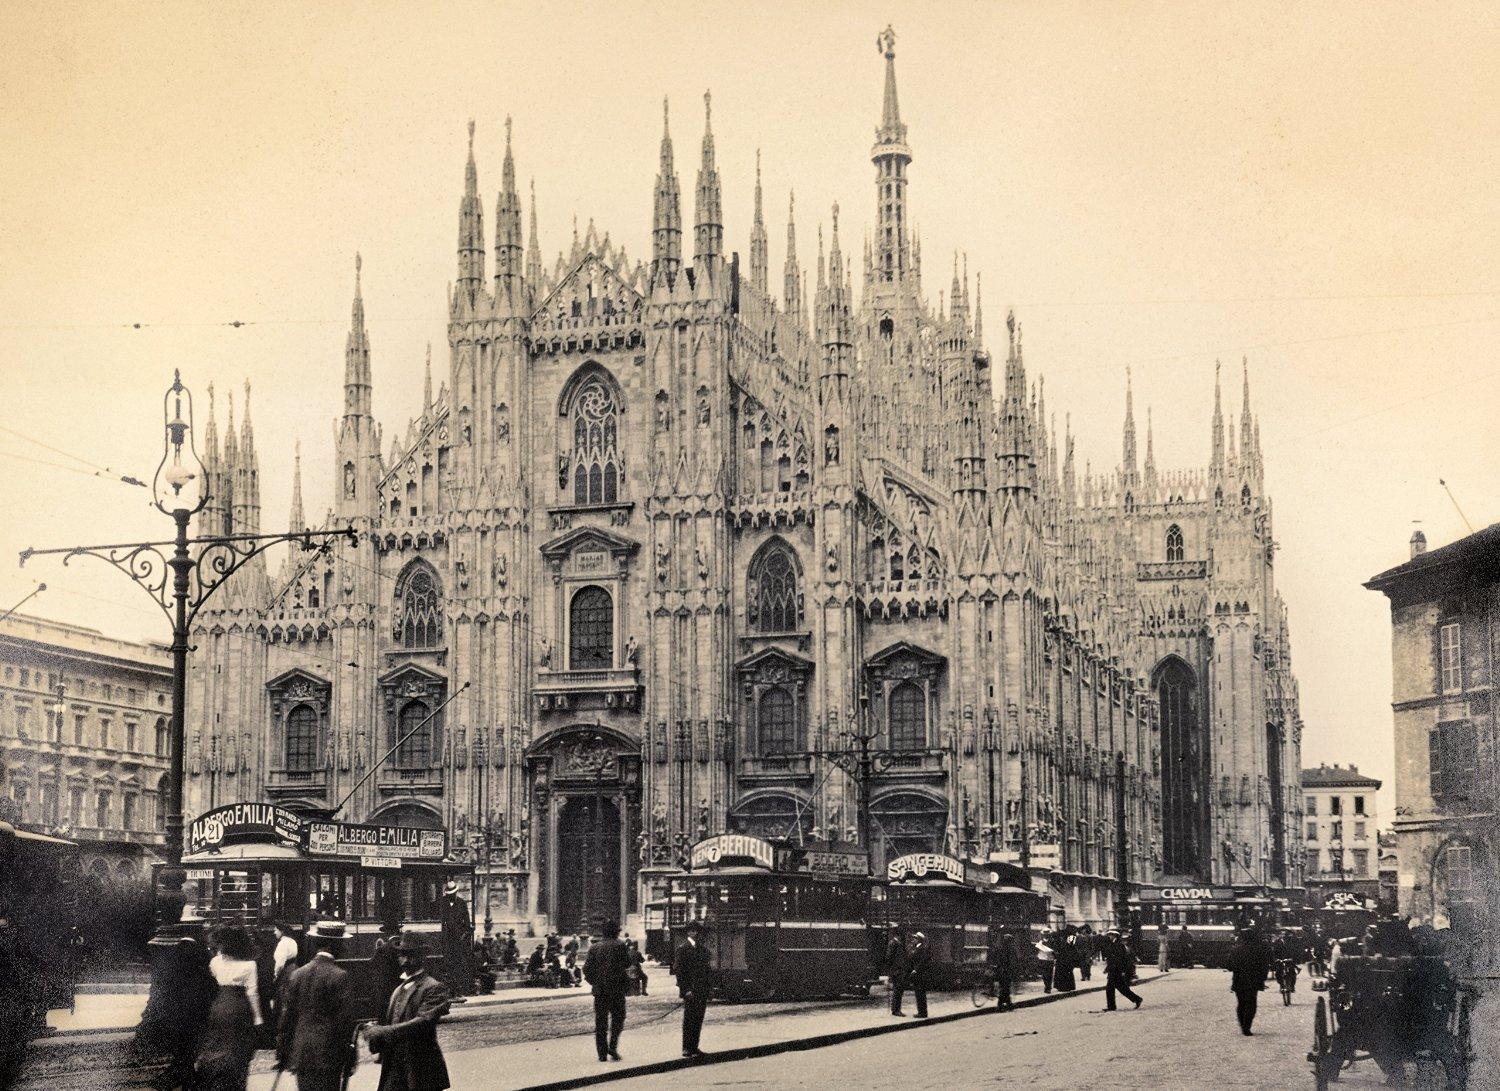 Milano in 1910 by Clementoni Jigsaw Puzzle 1000 pieces milano-cathedral